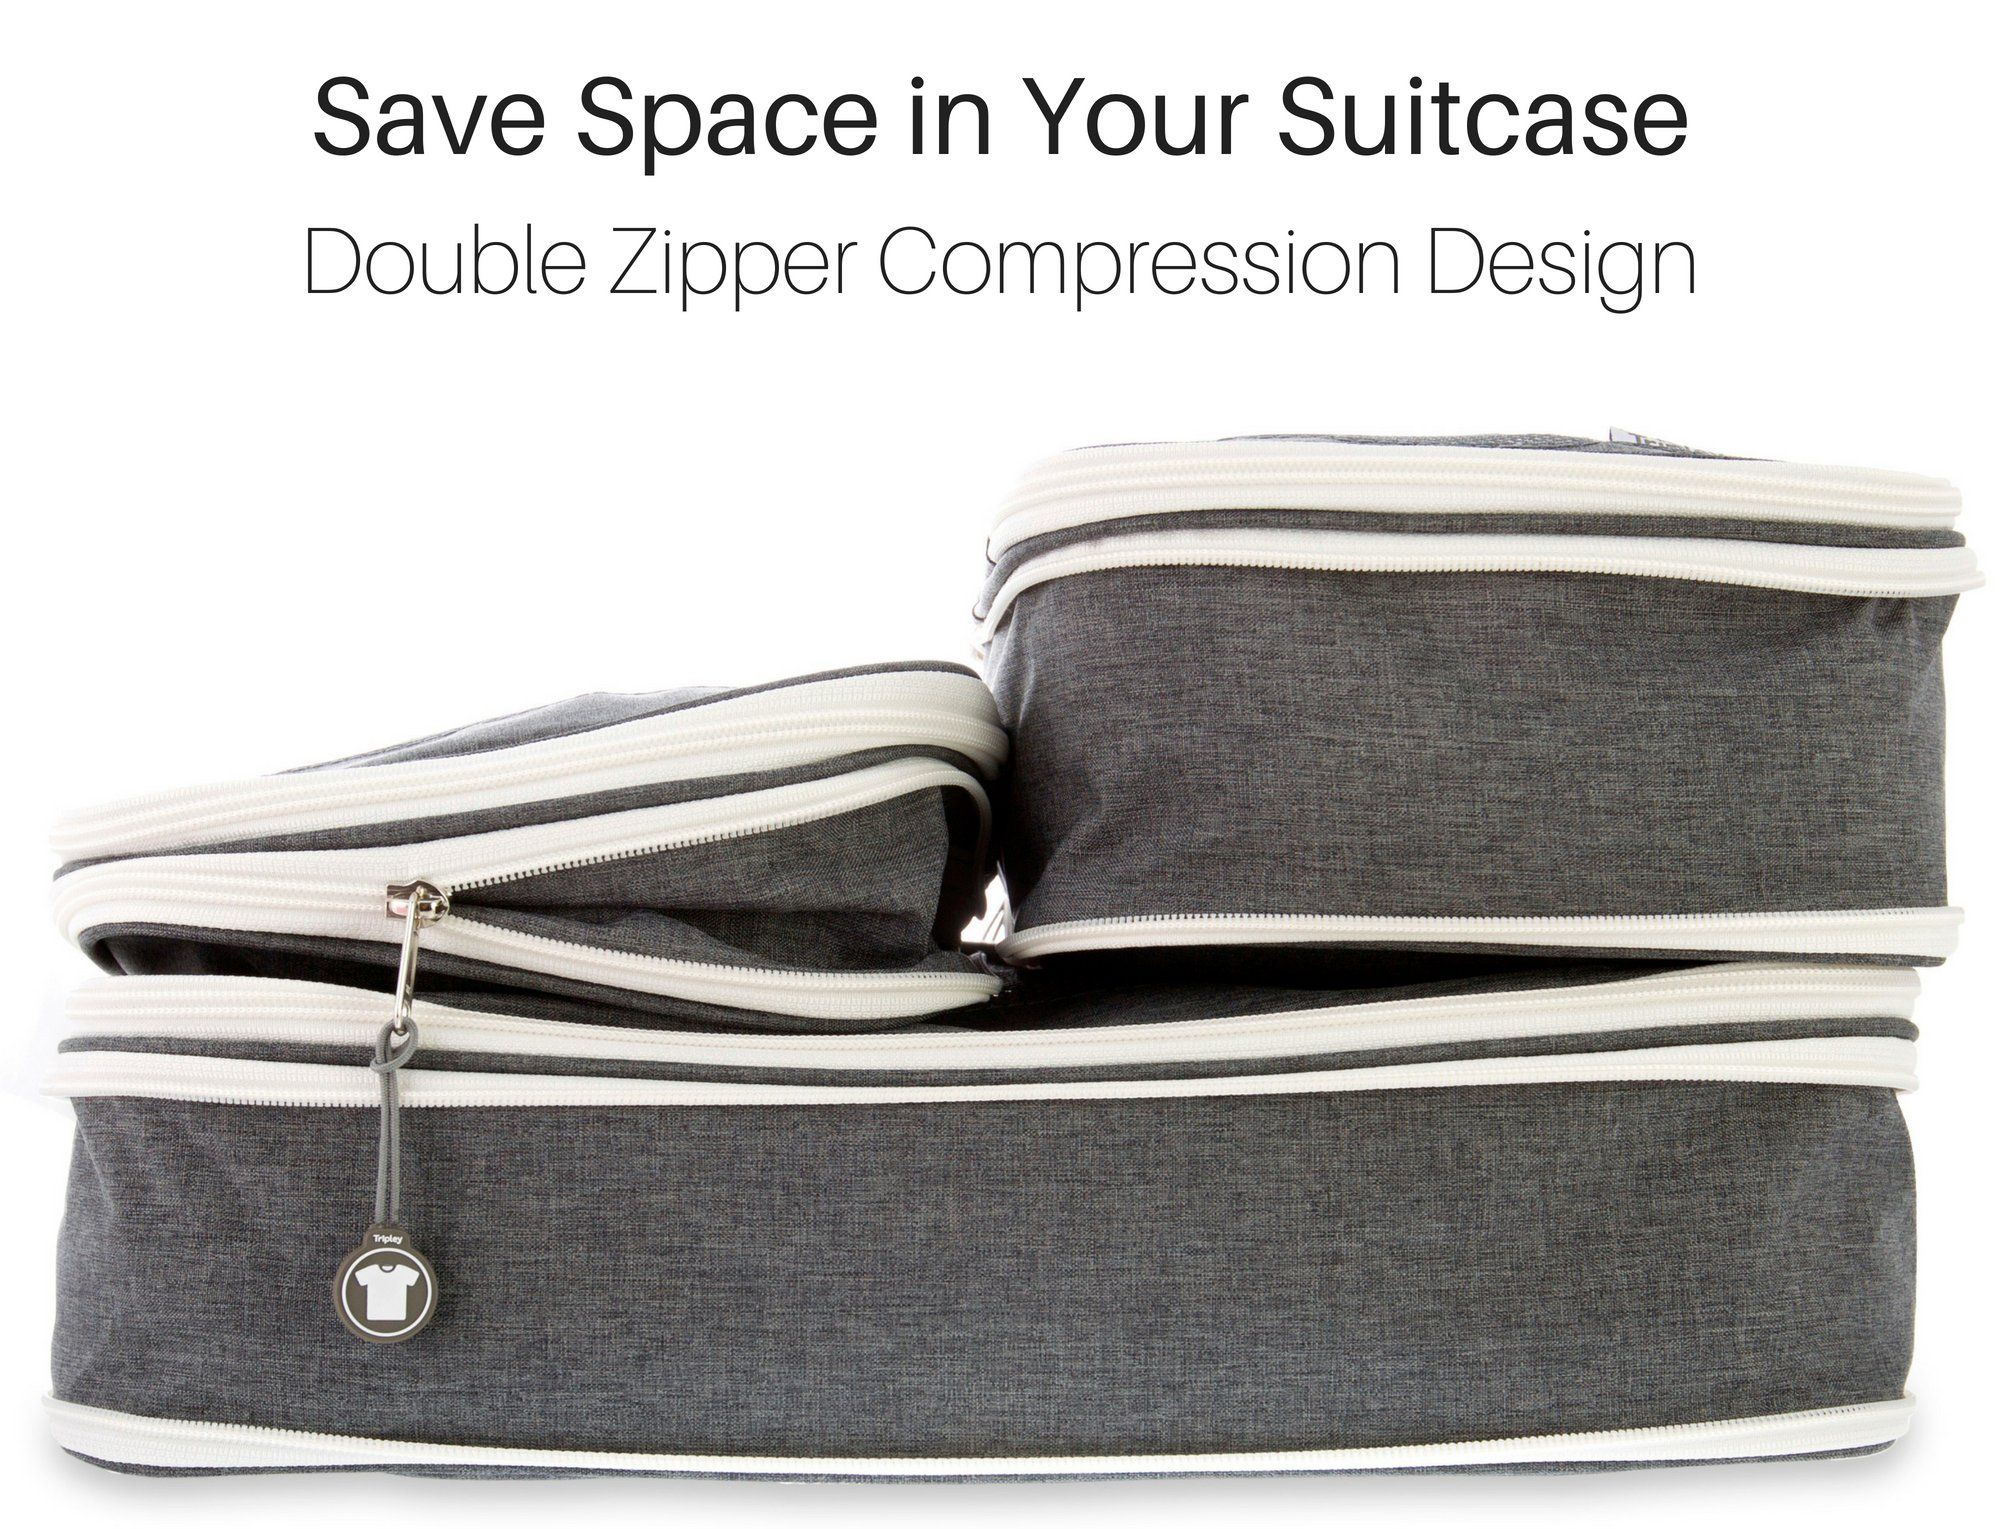 Compression Packing Cubes w/Space Saving Double Zipper, Set of 3 Travel Compression Cubes